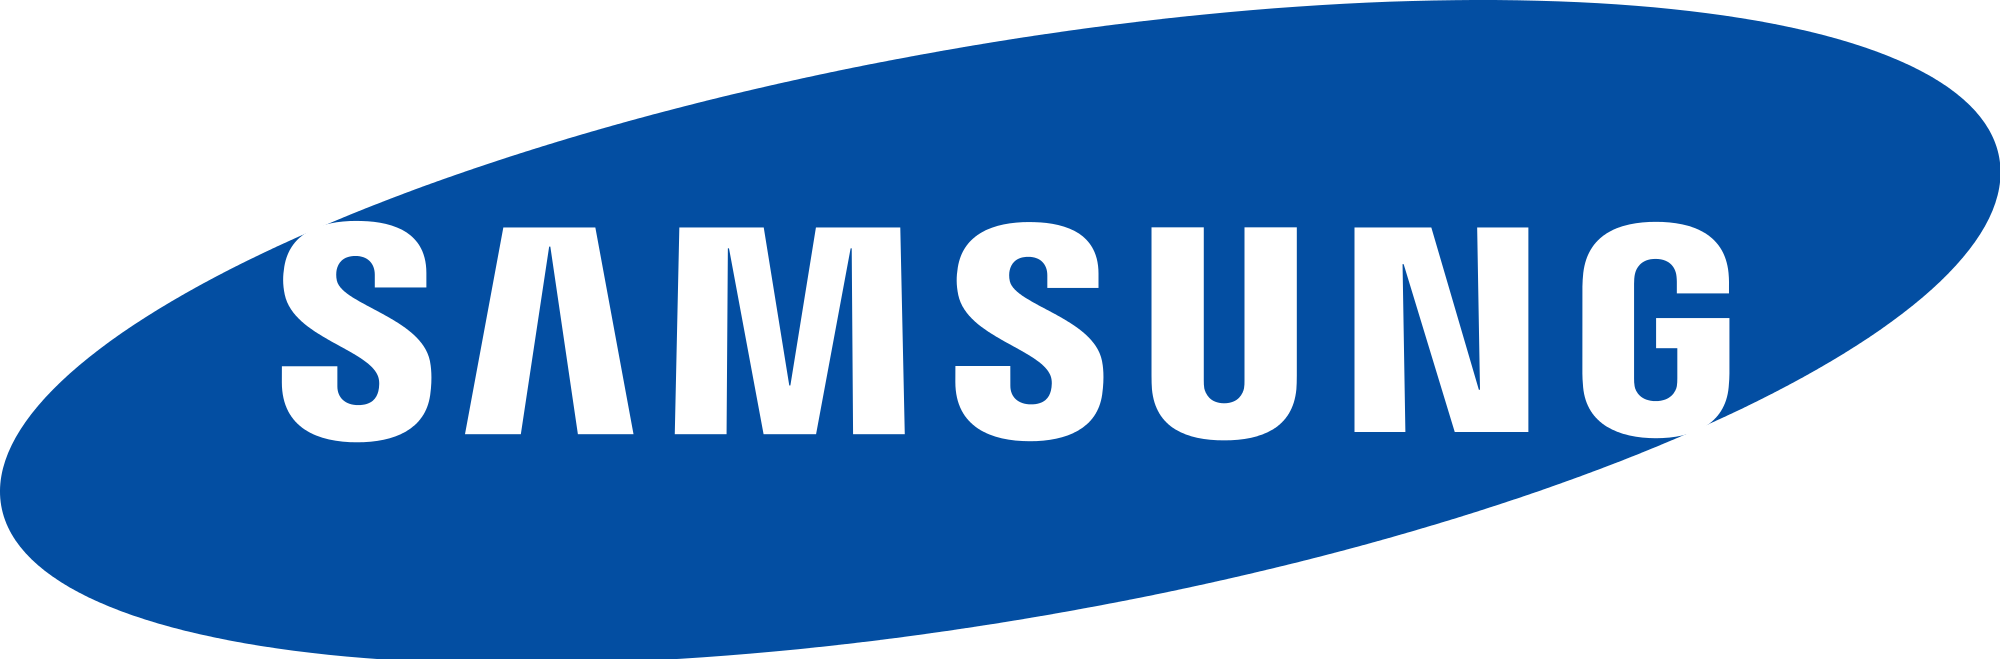 Arteris FlexNoC Interconnect IP is Licensed for use in Select Samsung SUHD TV Models